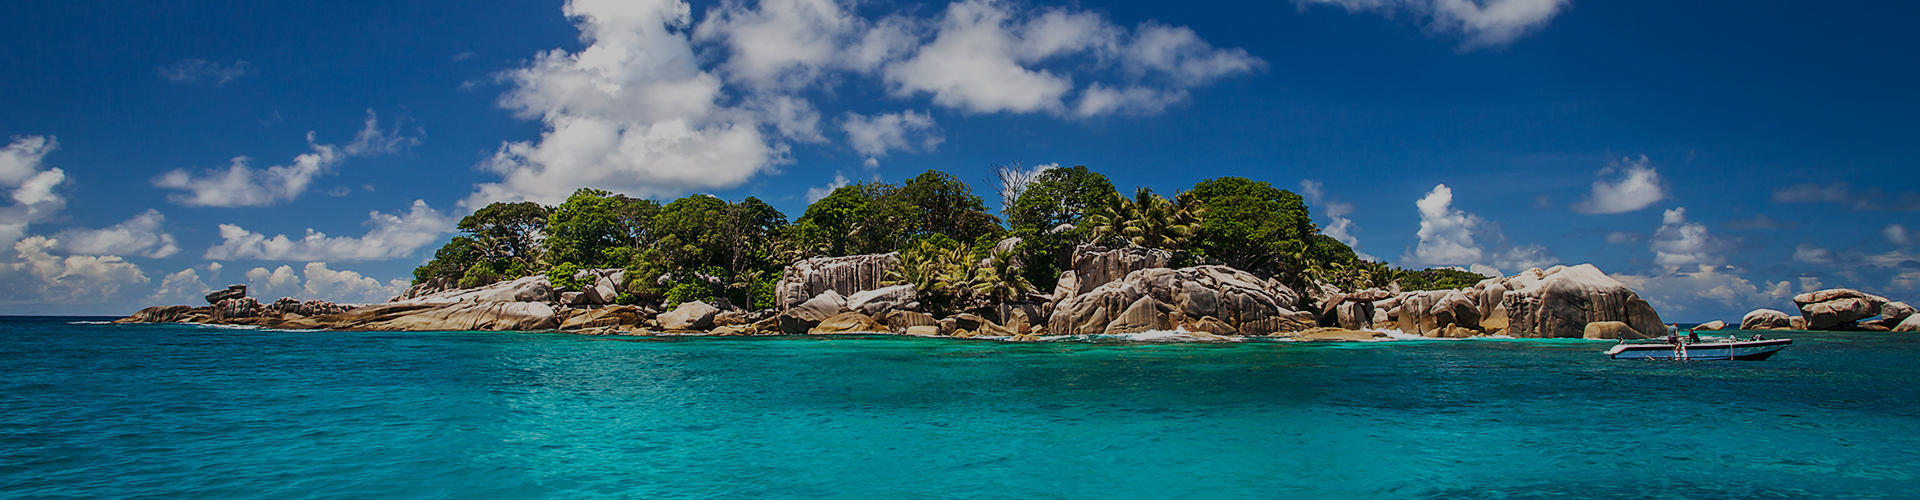 Landmark photograph of Seychelles